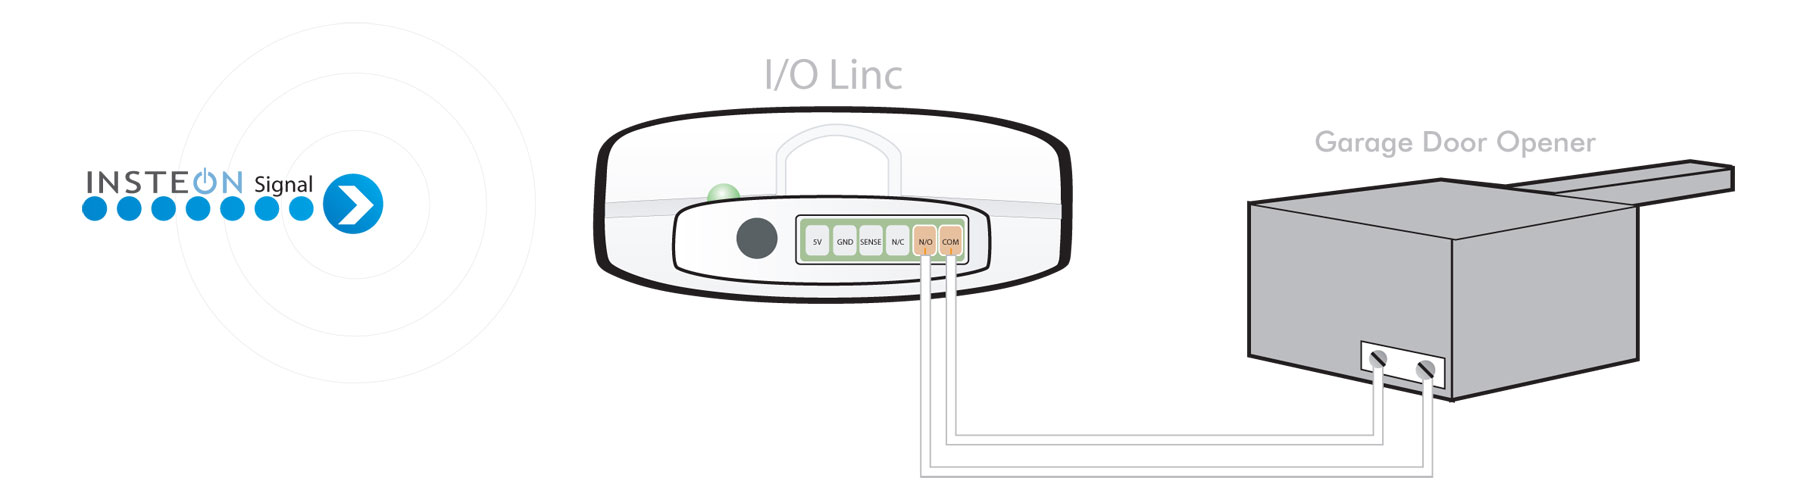 Garage door automation monitoring io linc to garage door rubansaba